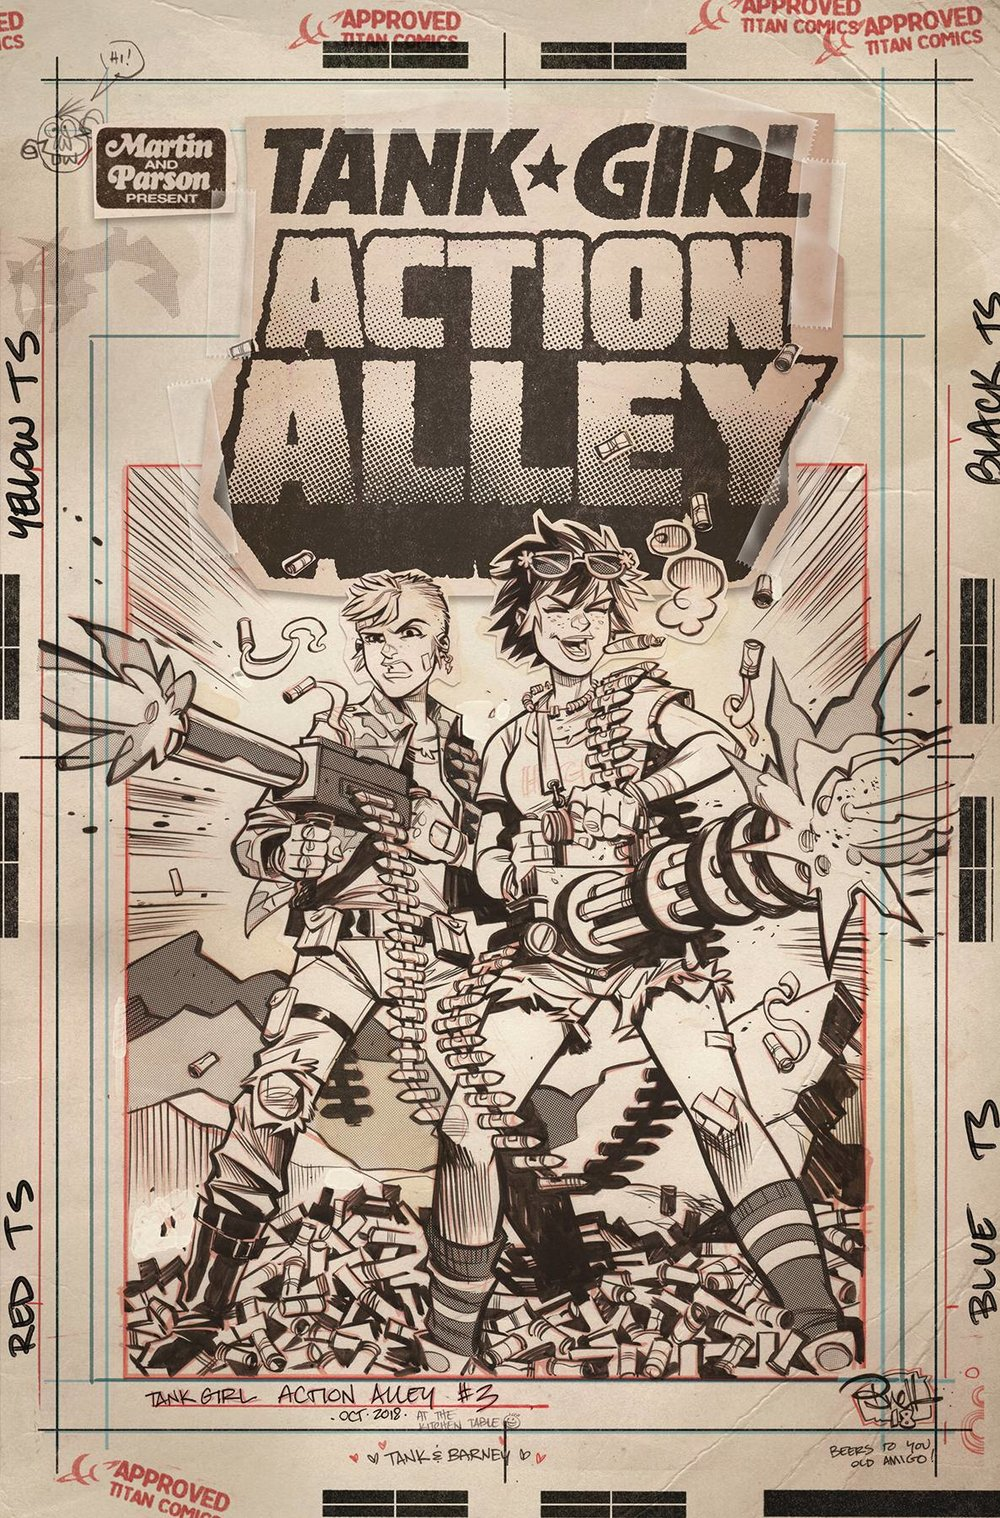 TANK GIRL ACTION ALLEY 3 CVR C ARTIST ED.jpg